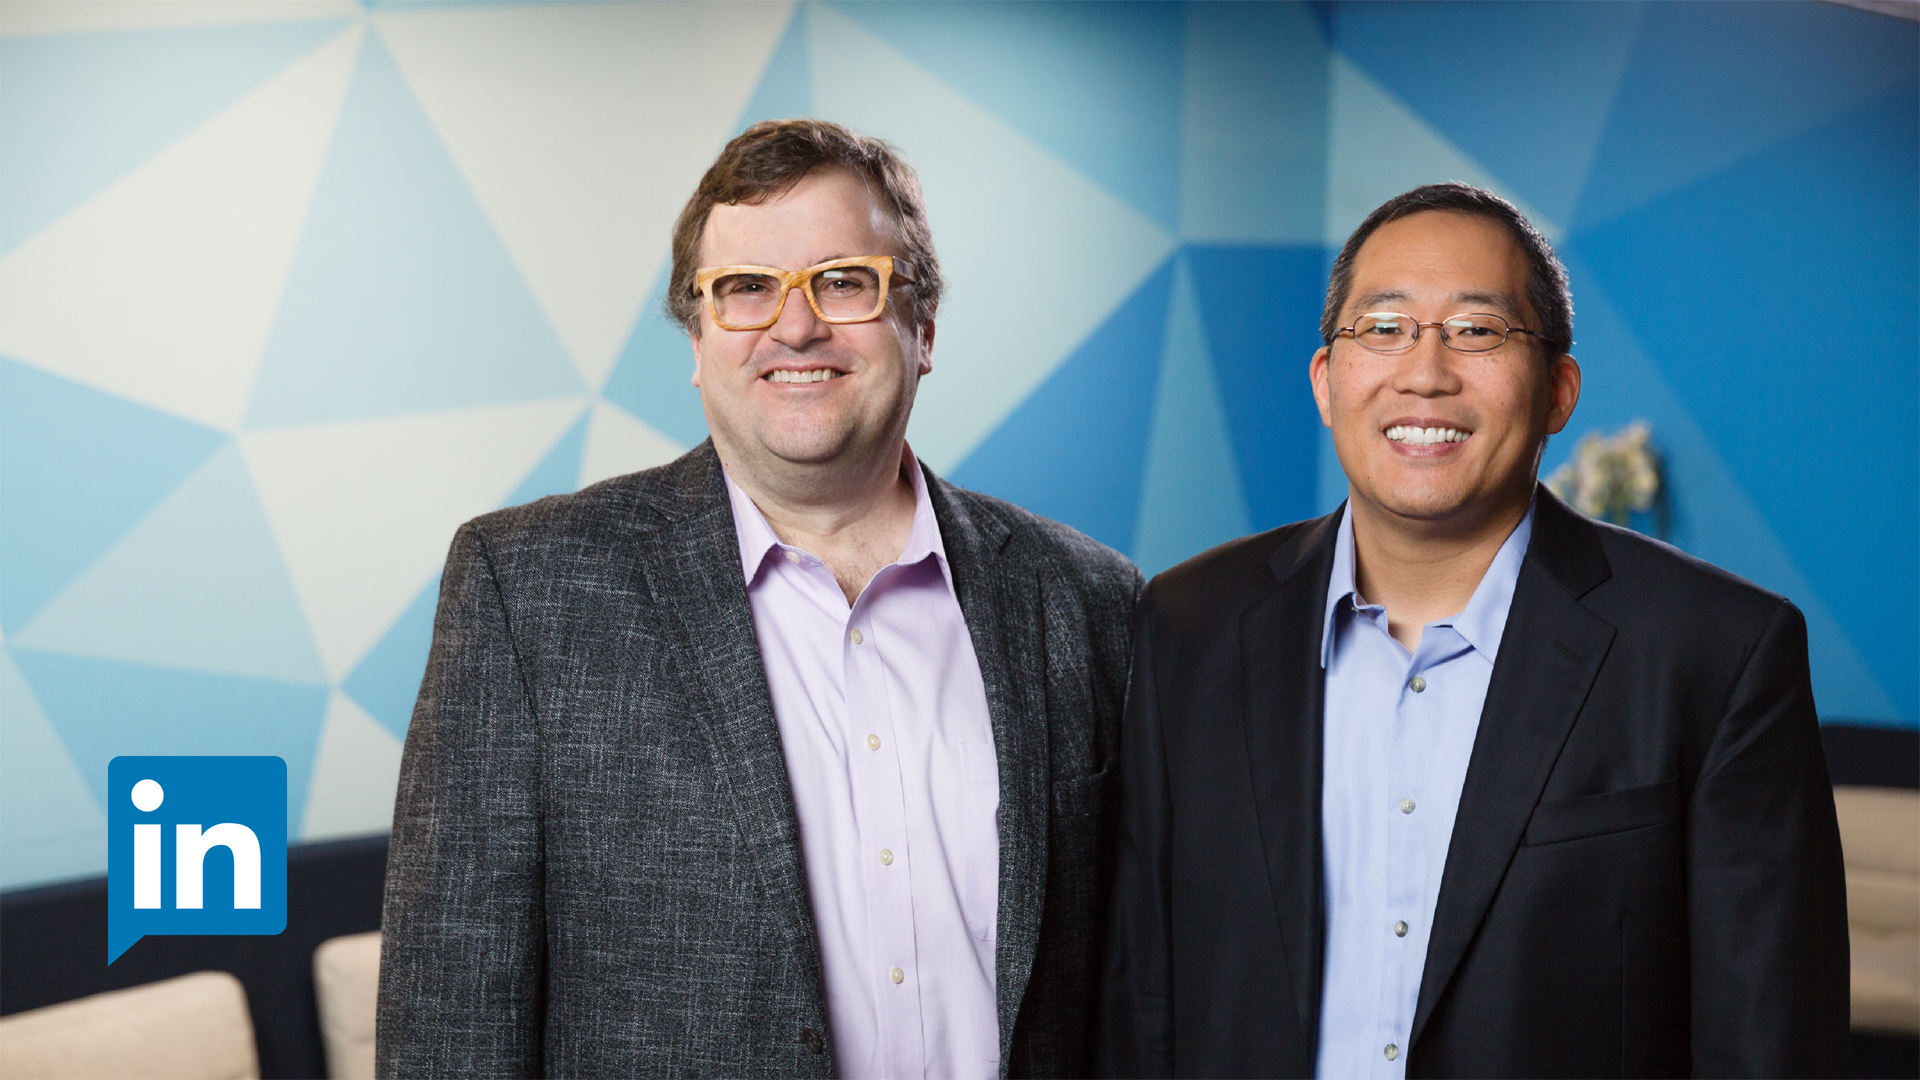 Welcome: Reid Hoffman and Chris Yeh on Creating an Alliance with Employees